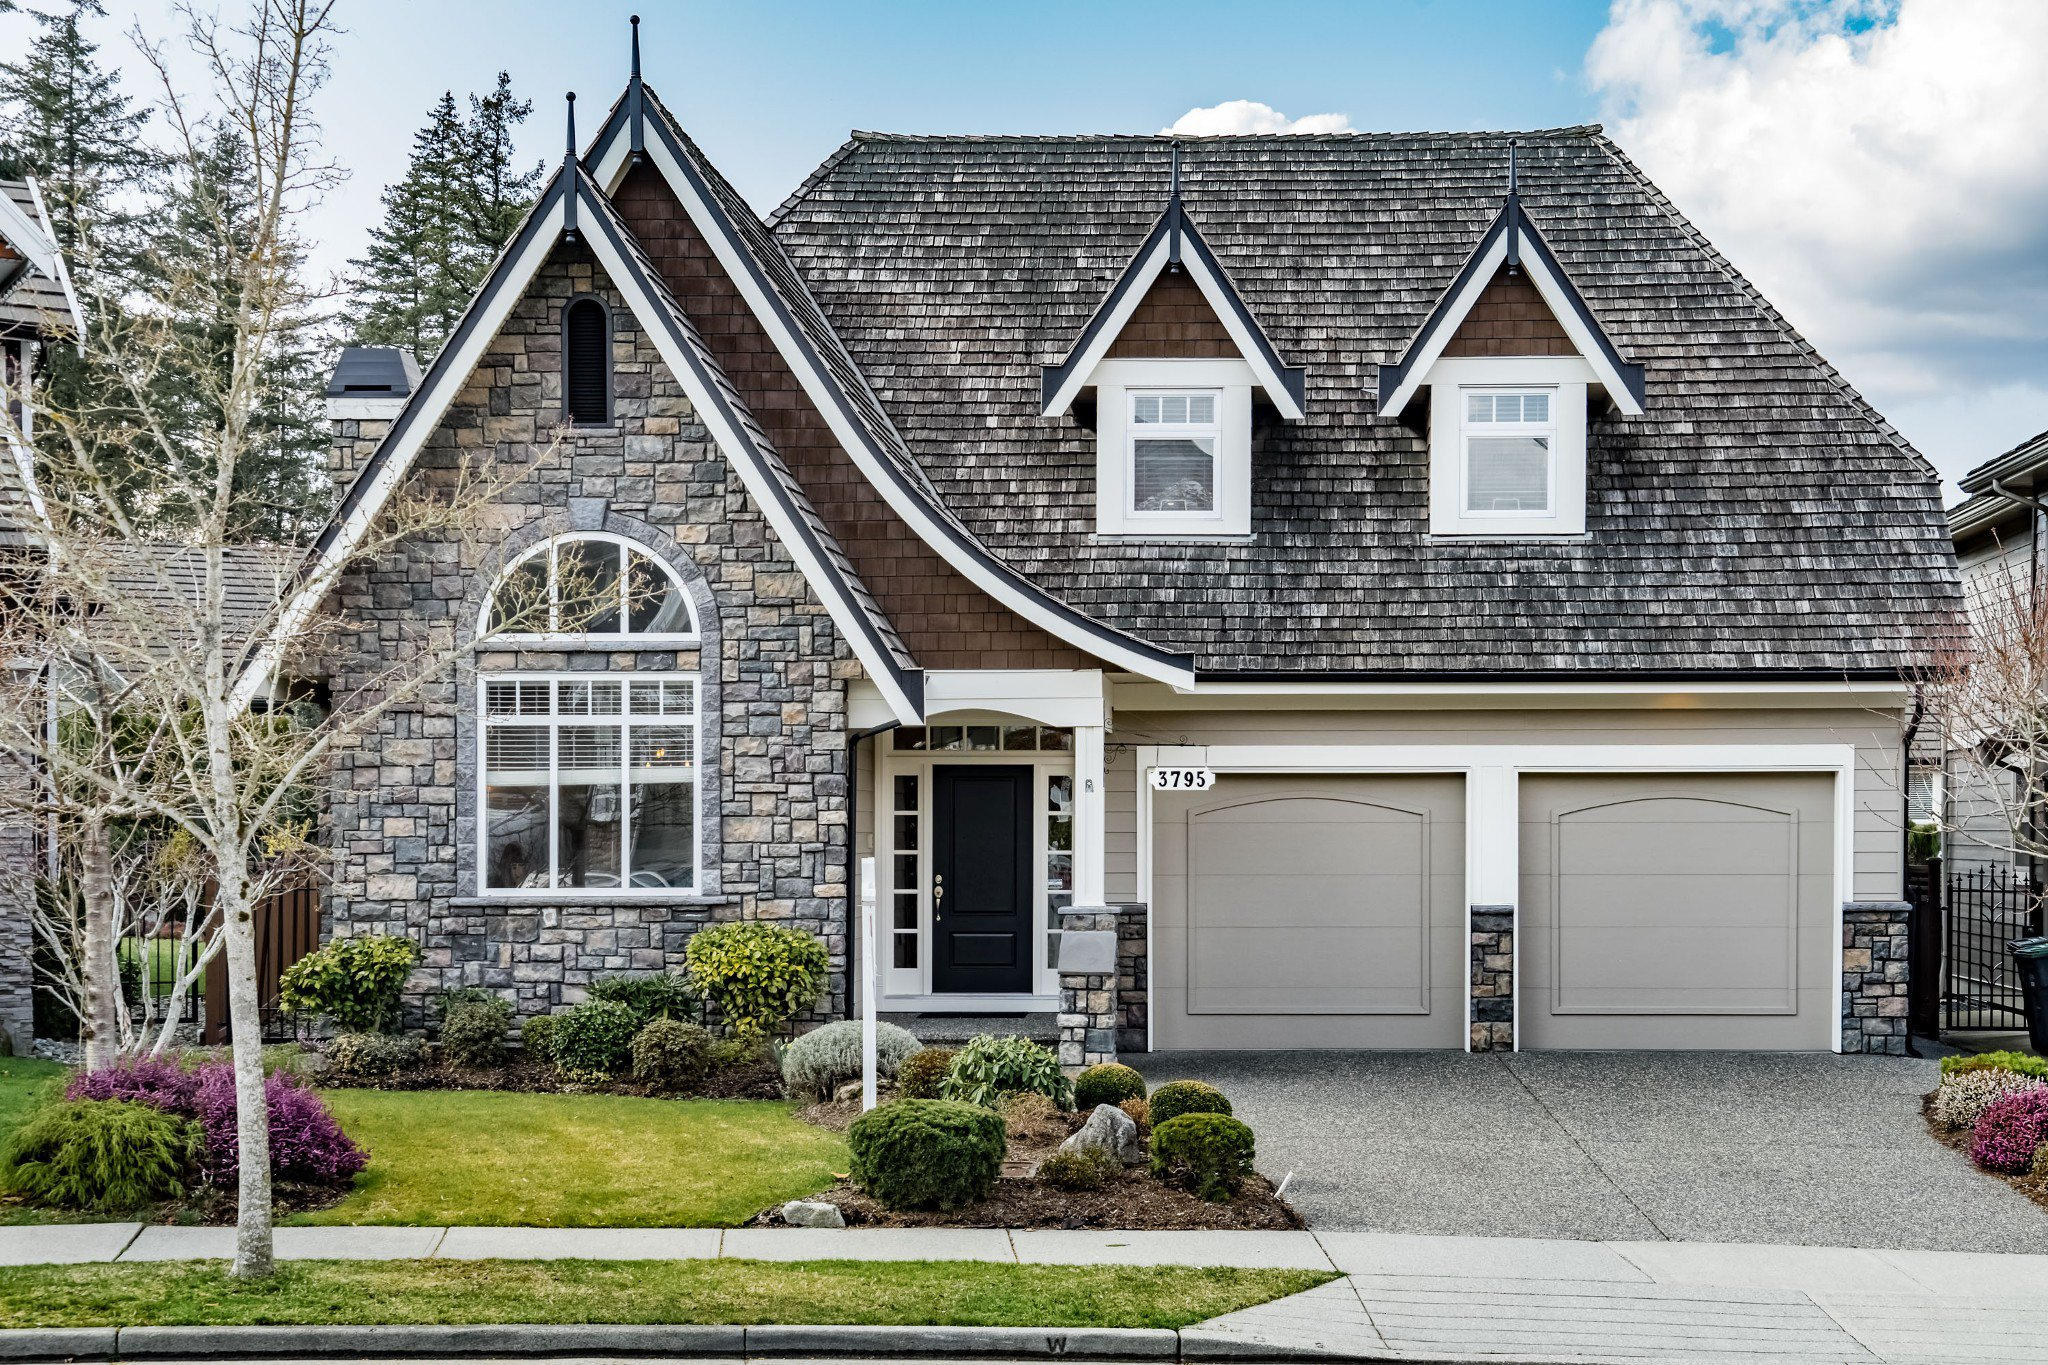 """Main Photo: 3795 154A Street in Surrey: Morgan Creek House for sale in """"IRONWOOD"""" (South Surrey White Rock)  : MLS®# R2342903"""